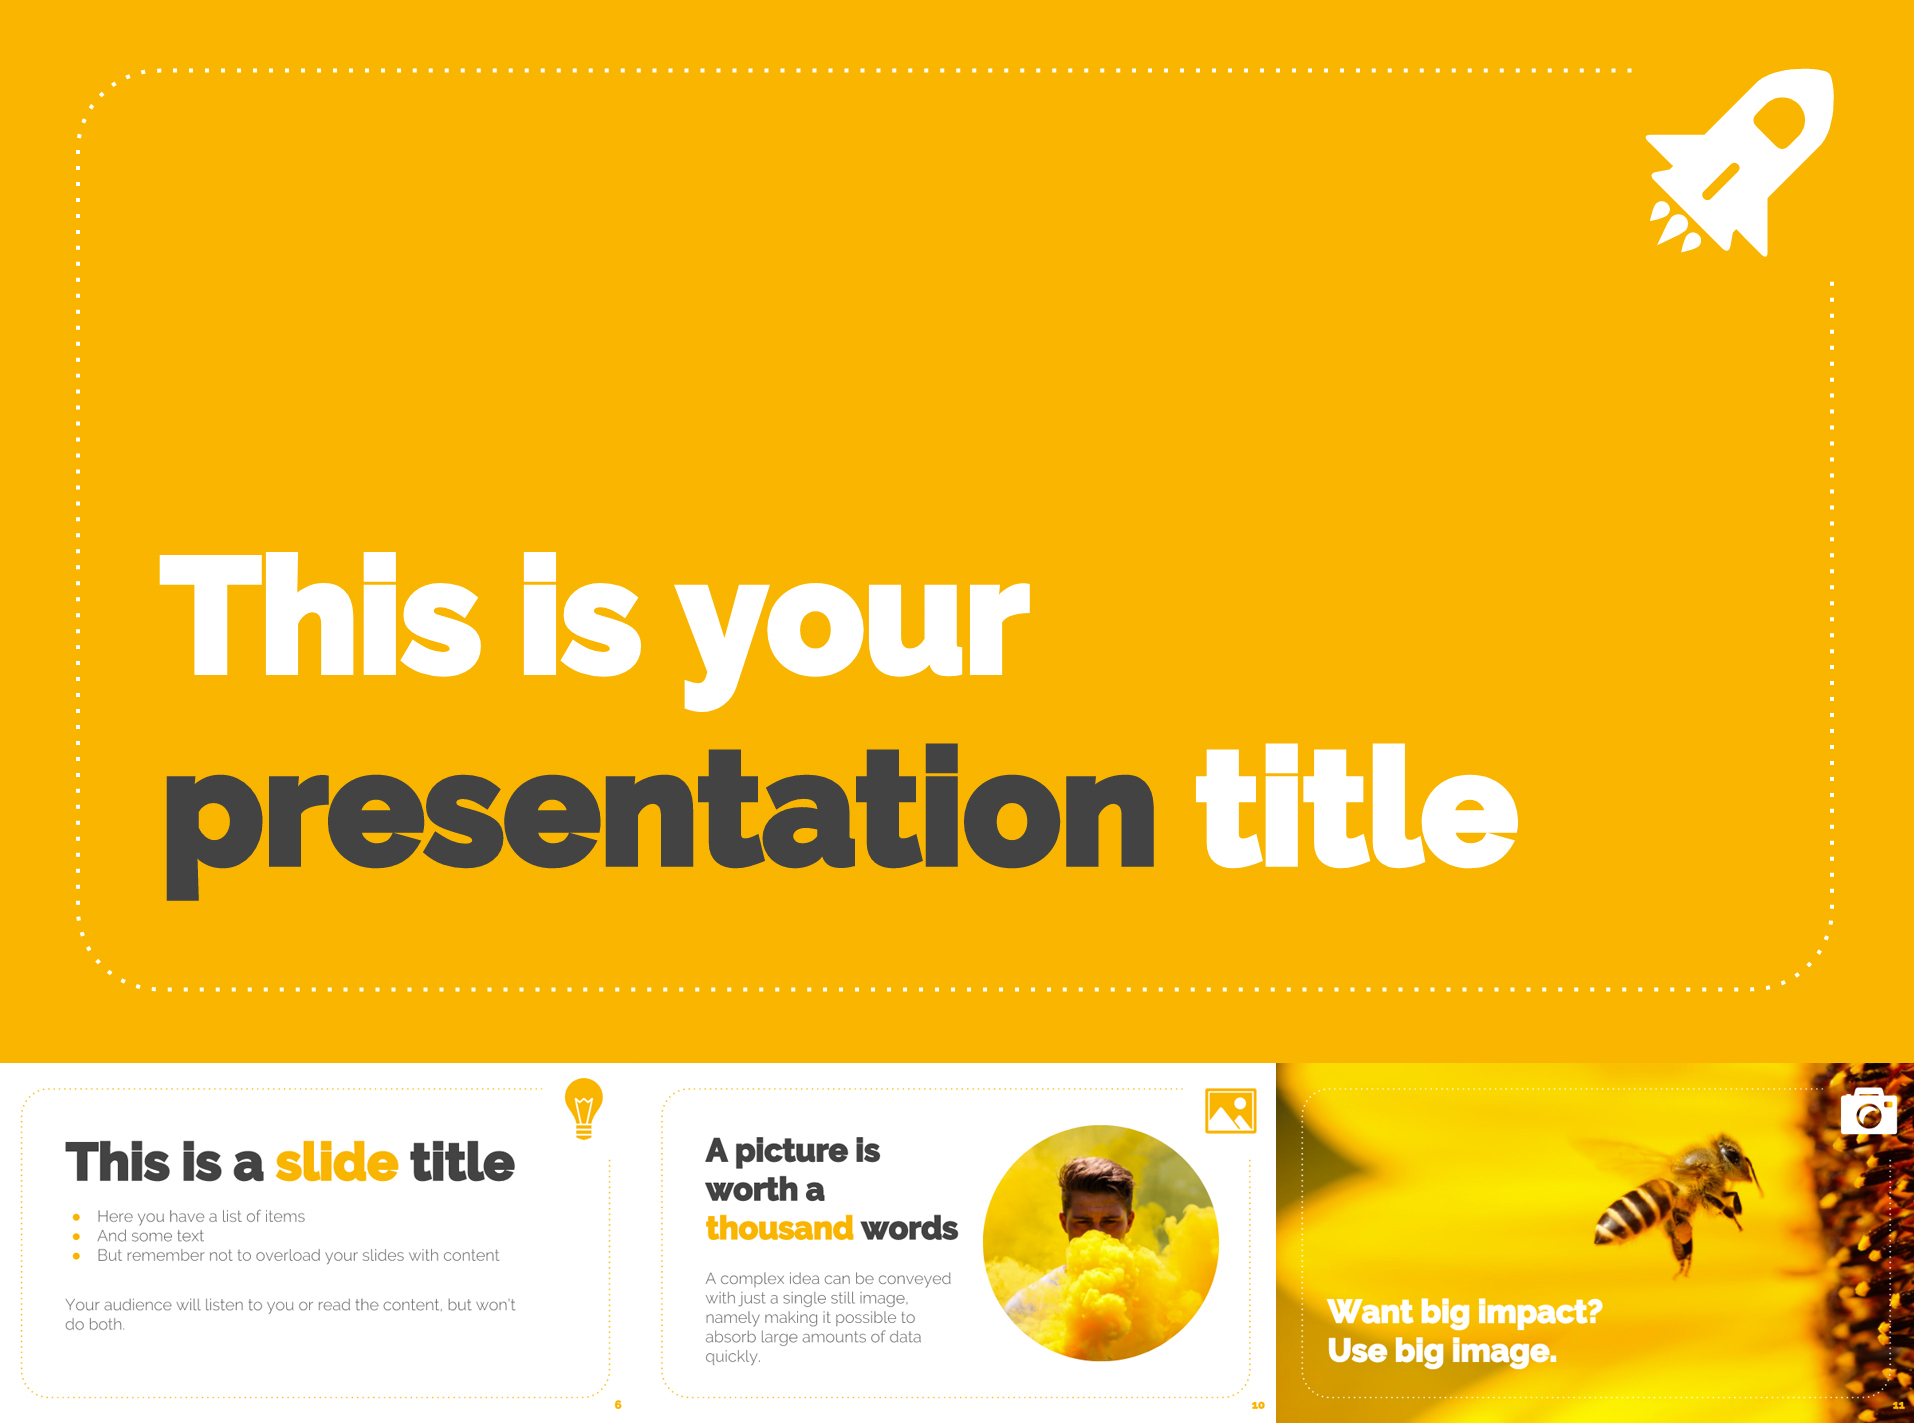 Free Google Slides Templates For Your Next Presentation - Google presentation templates